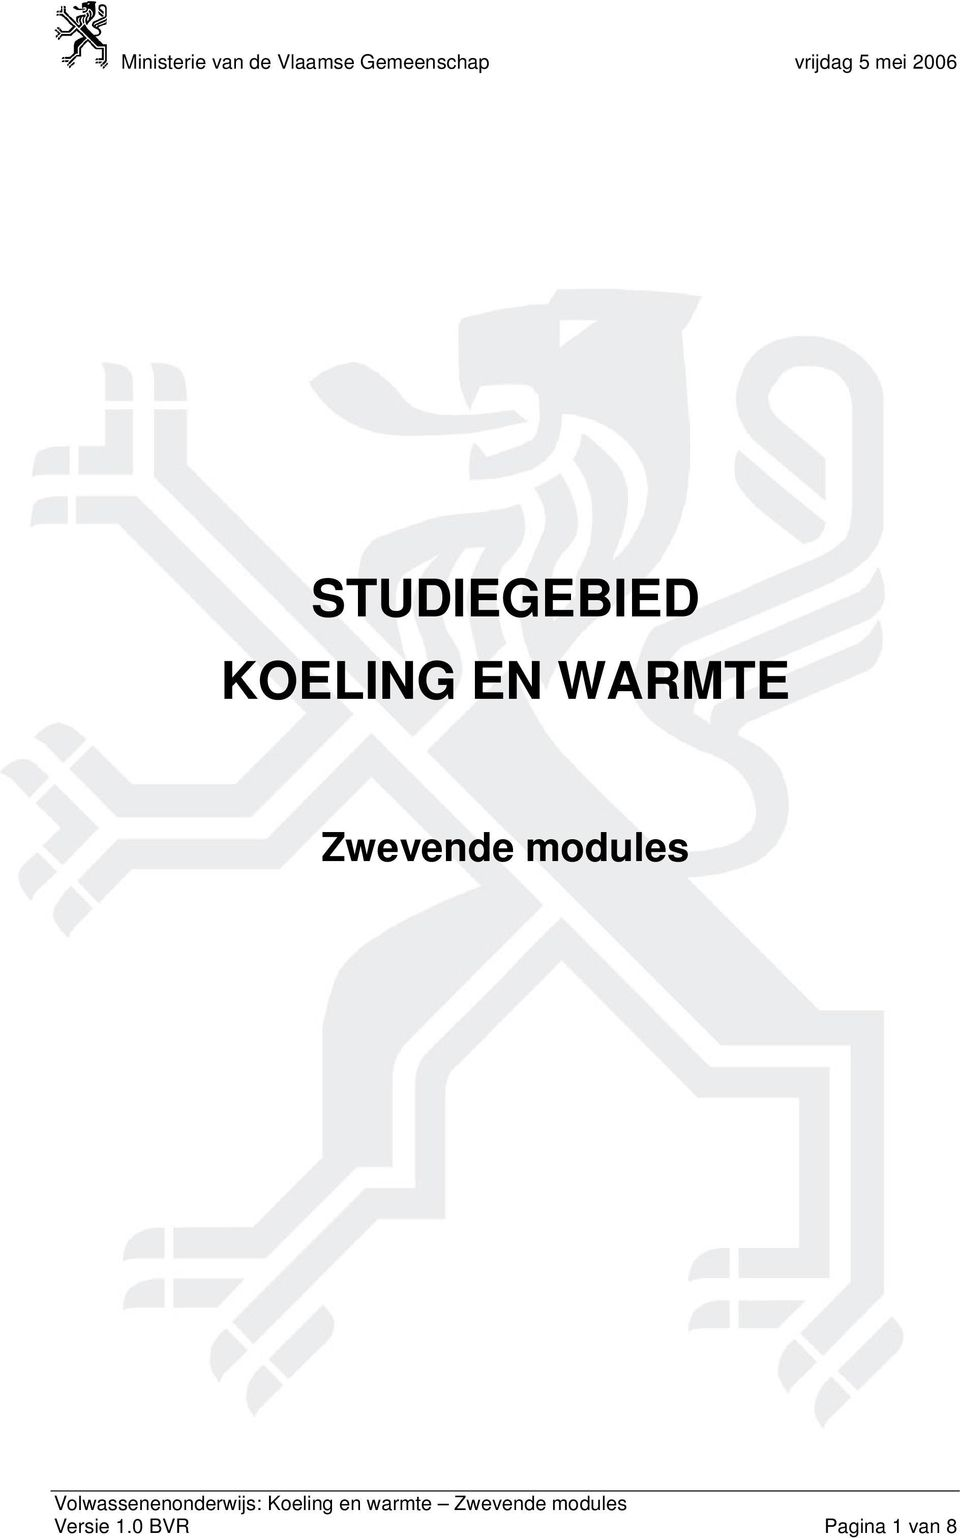 Zwevende modules